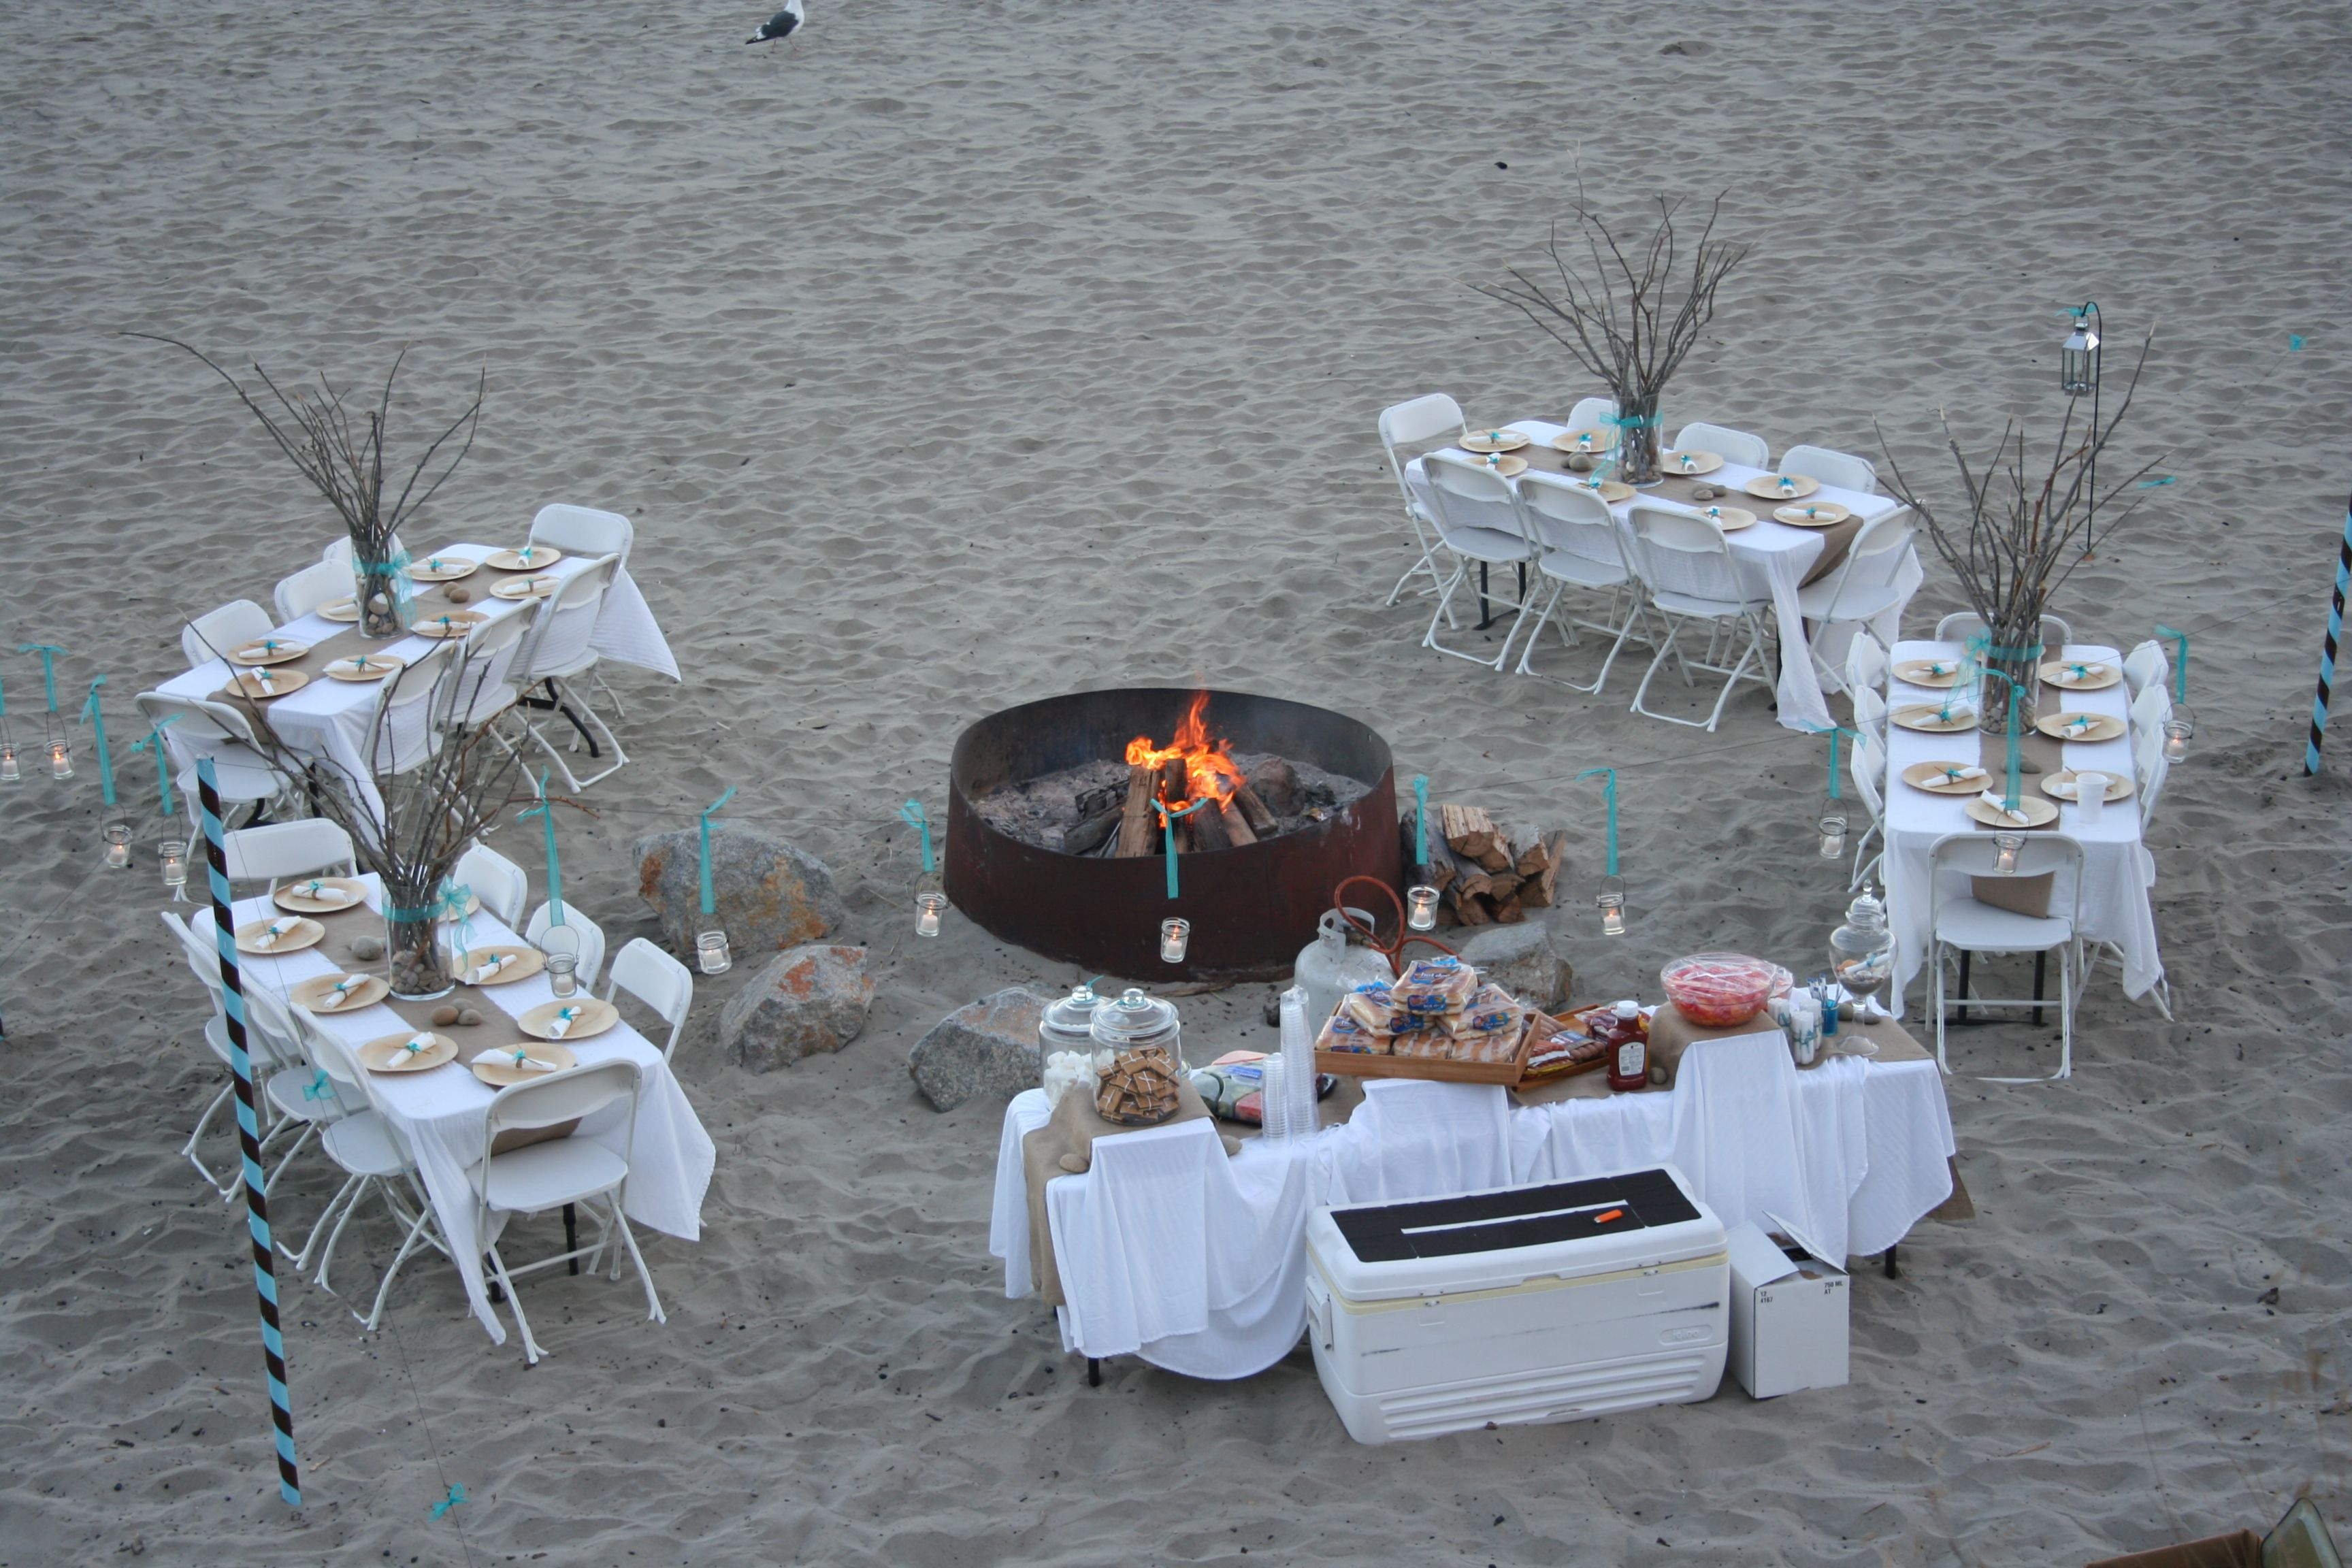 Menu And Reception Set Up At Sibonne In The Turks And: Rehearsal Dinner On The Beach -BBQ -beach Chairs, Blankets